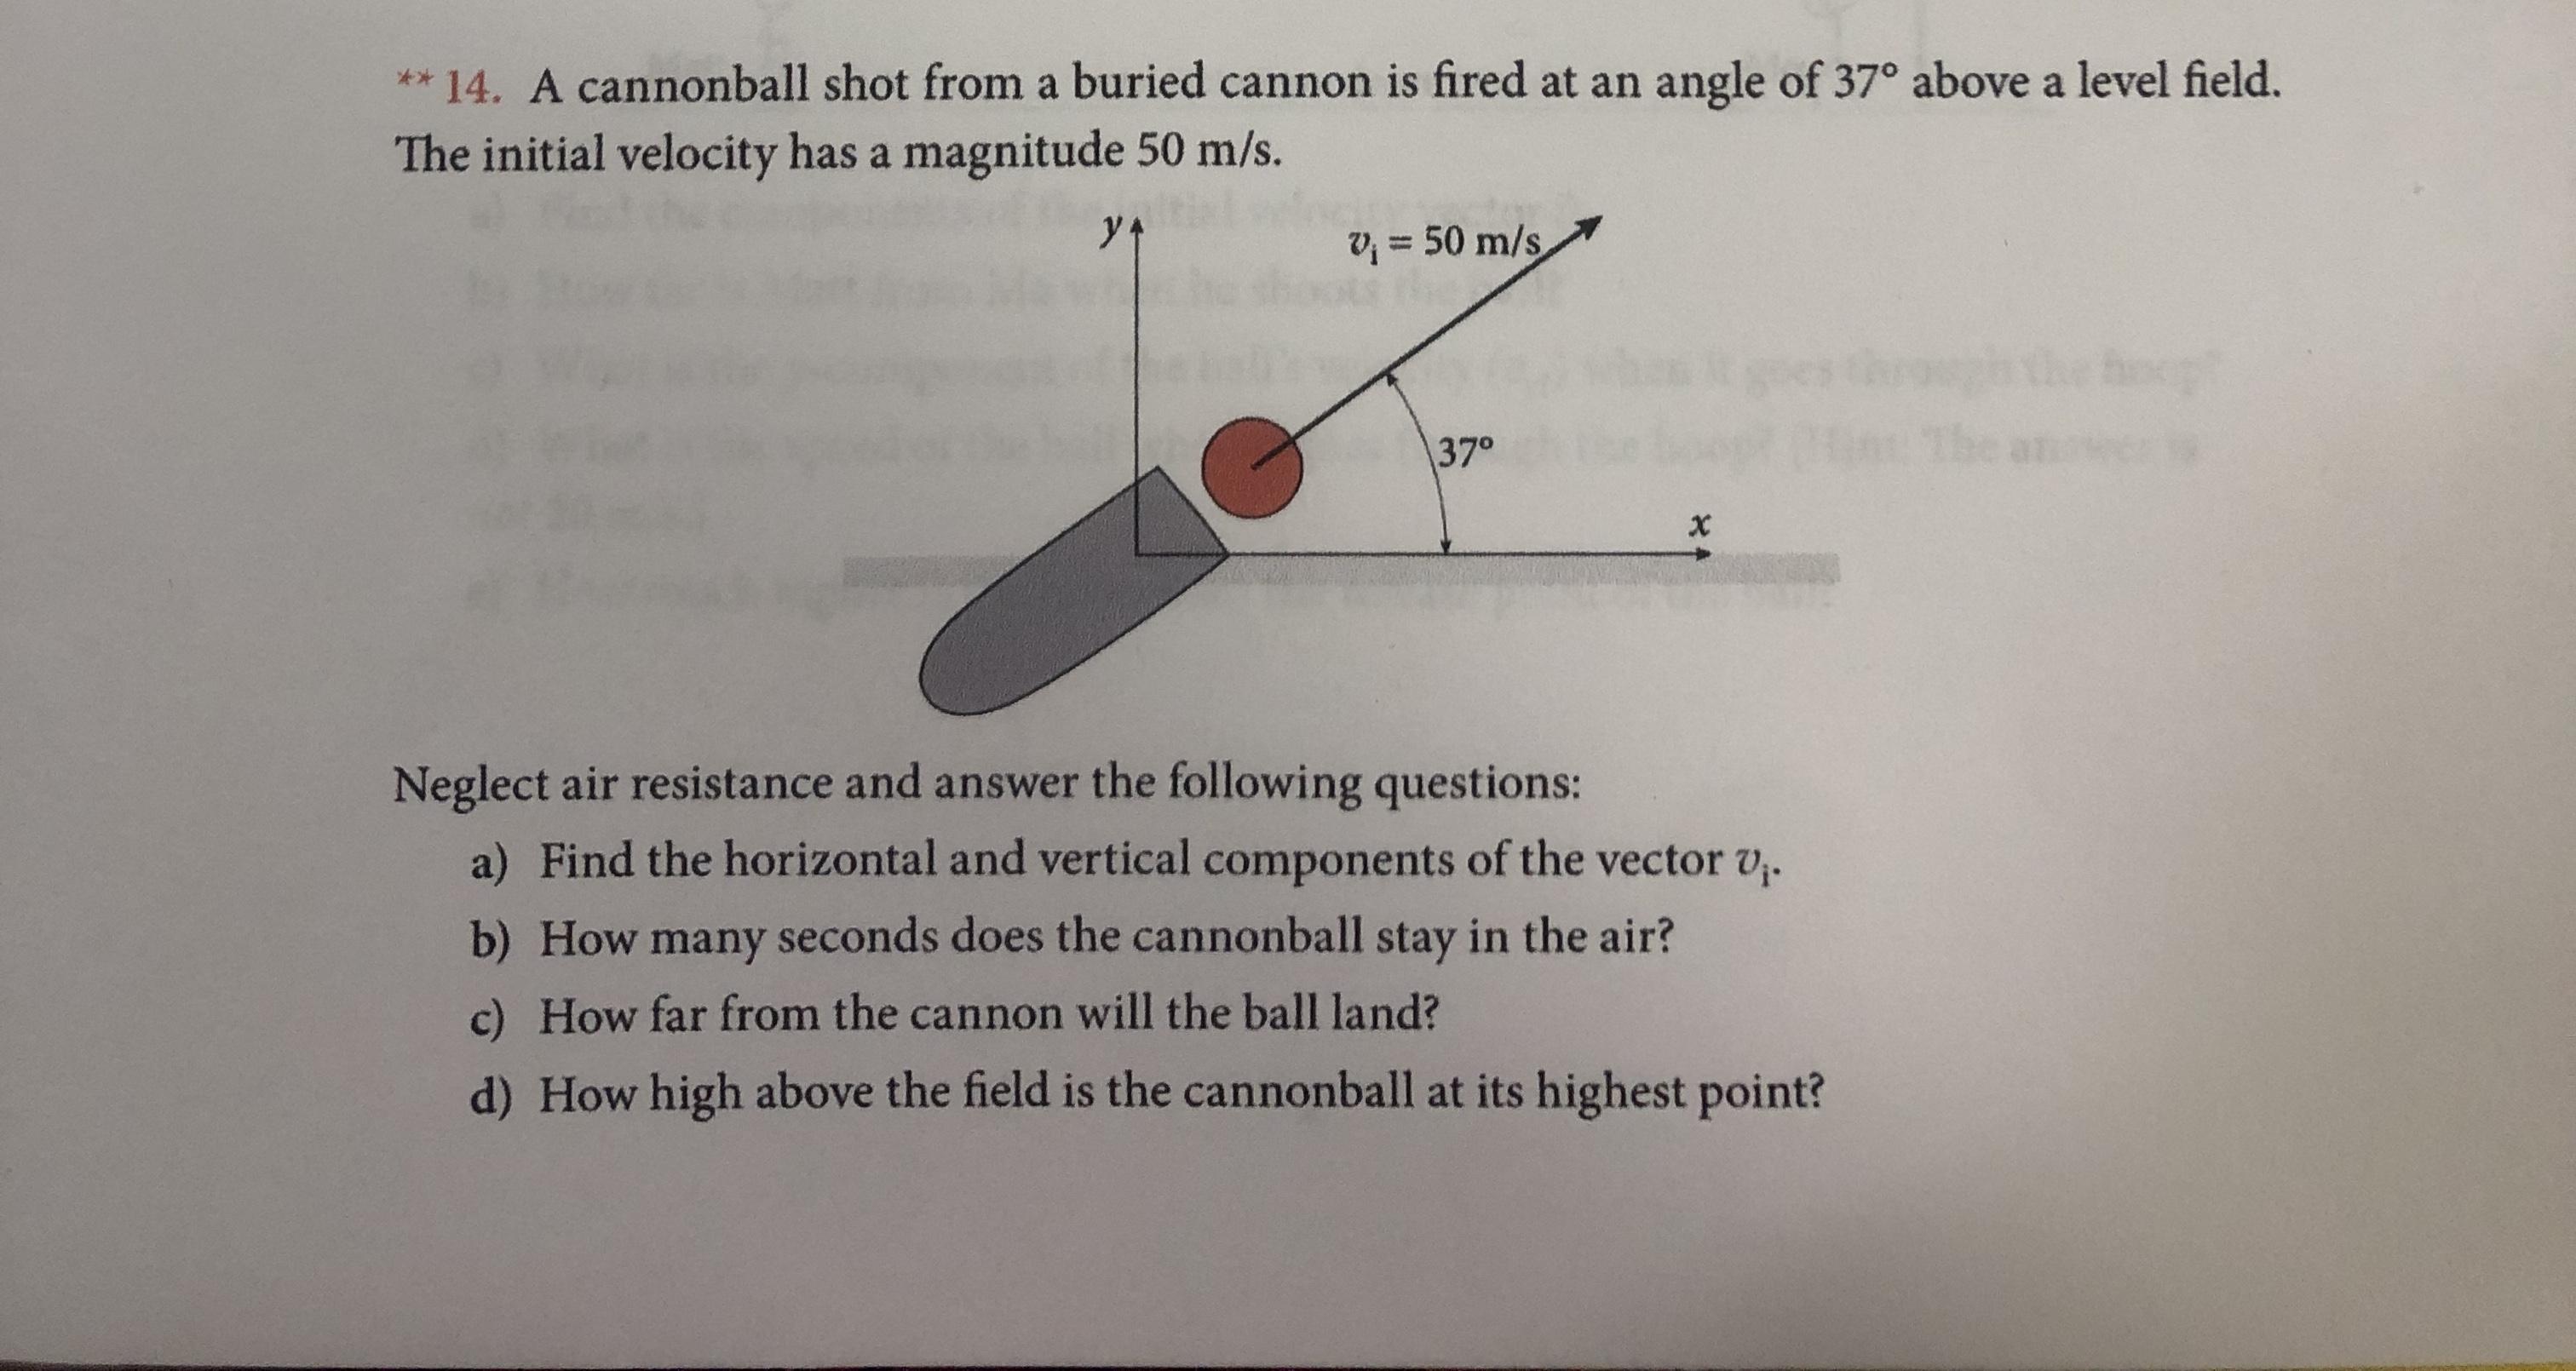 ** 14. A cannonball shot from a buried cannon is fired at an angle of 37° above a level field. The initial velocity has a magnitude 50 m/s. 50 m/s the oop 5an: 370 x Neglect air resistance and answer the following questions: a) Find the horizontal and vertical components of the vector v. b) How many seconds does the cannonball stay in the air? c) How far from the cannon will the ball land? d) How high above the field is the cannonball at its highest point?